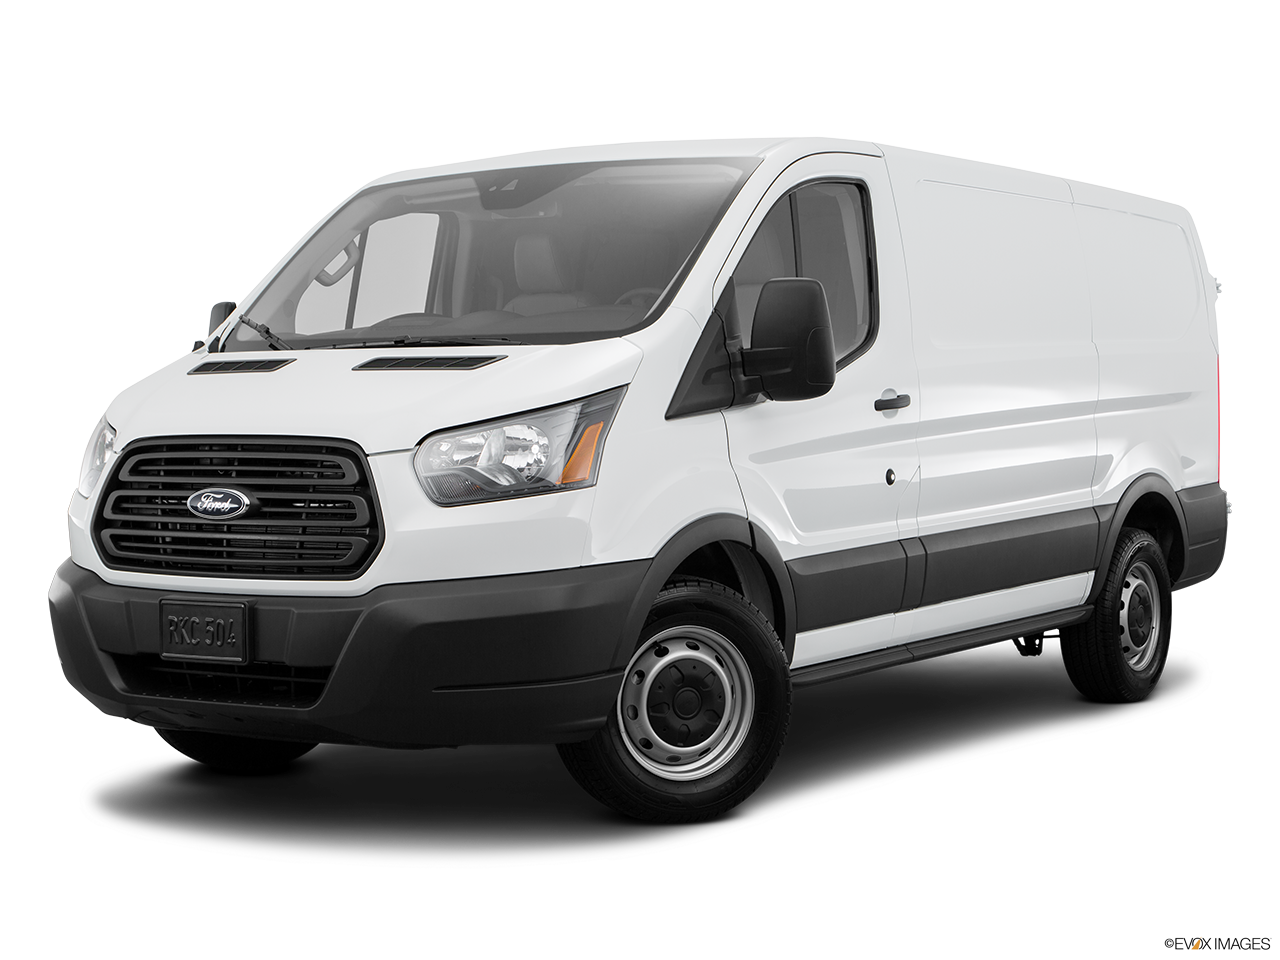 Test Drive A 2016 Ford Transit at Galpin Ford in Los Angeles